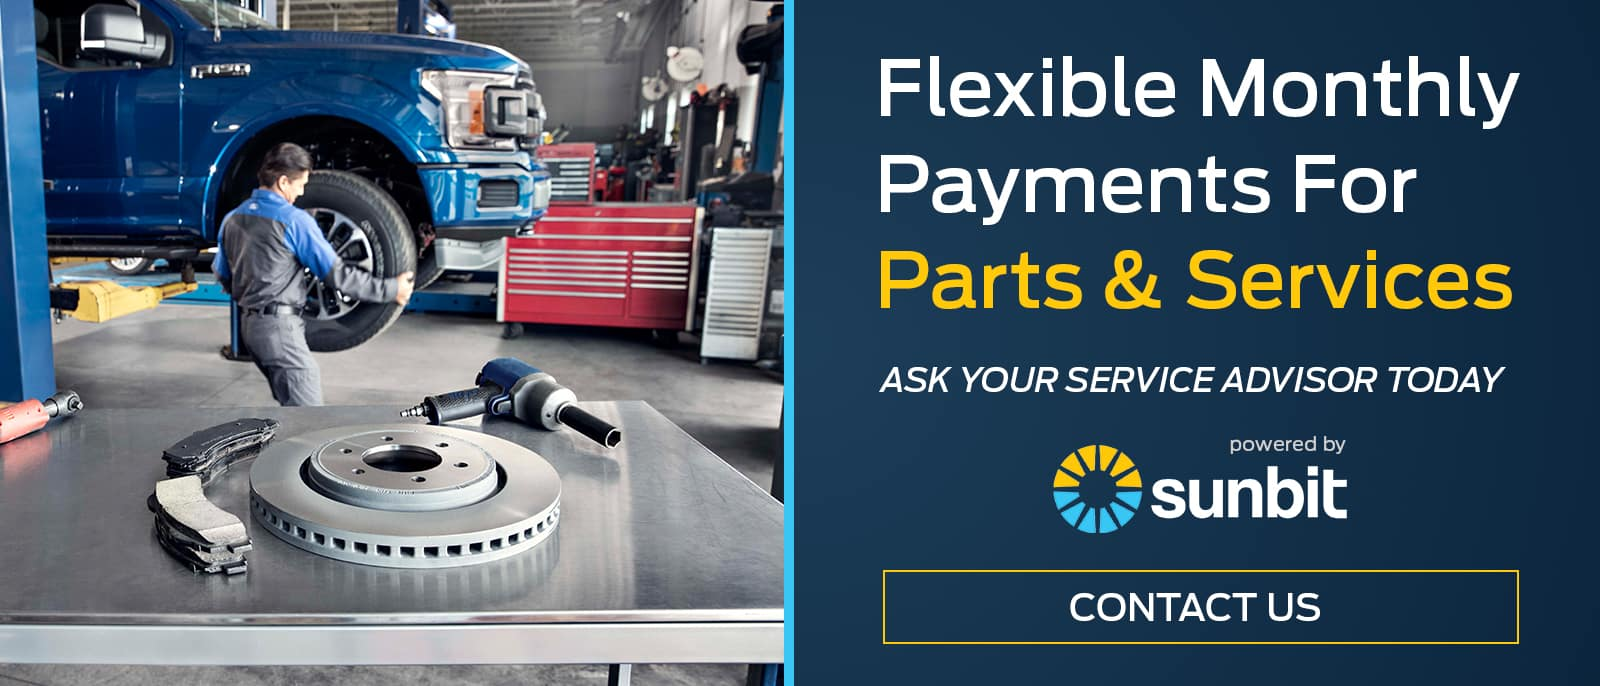 flexible monthly payments for parts and services